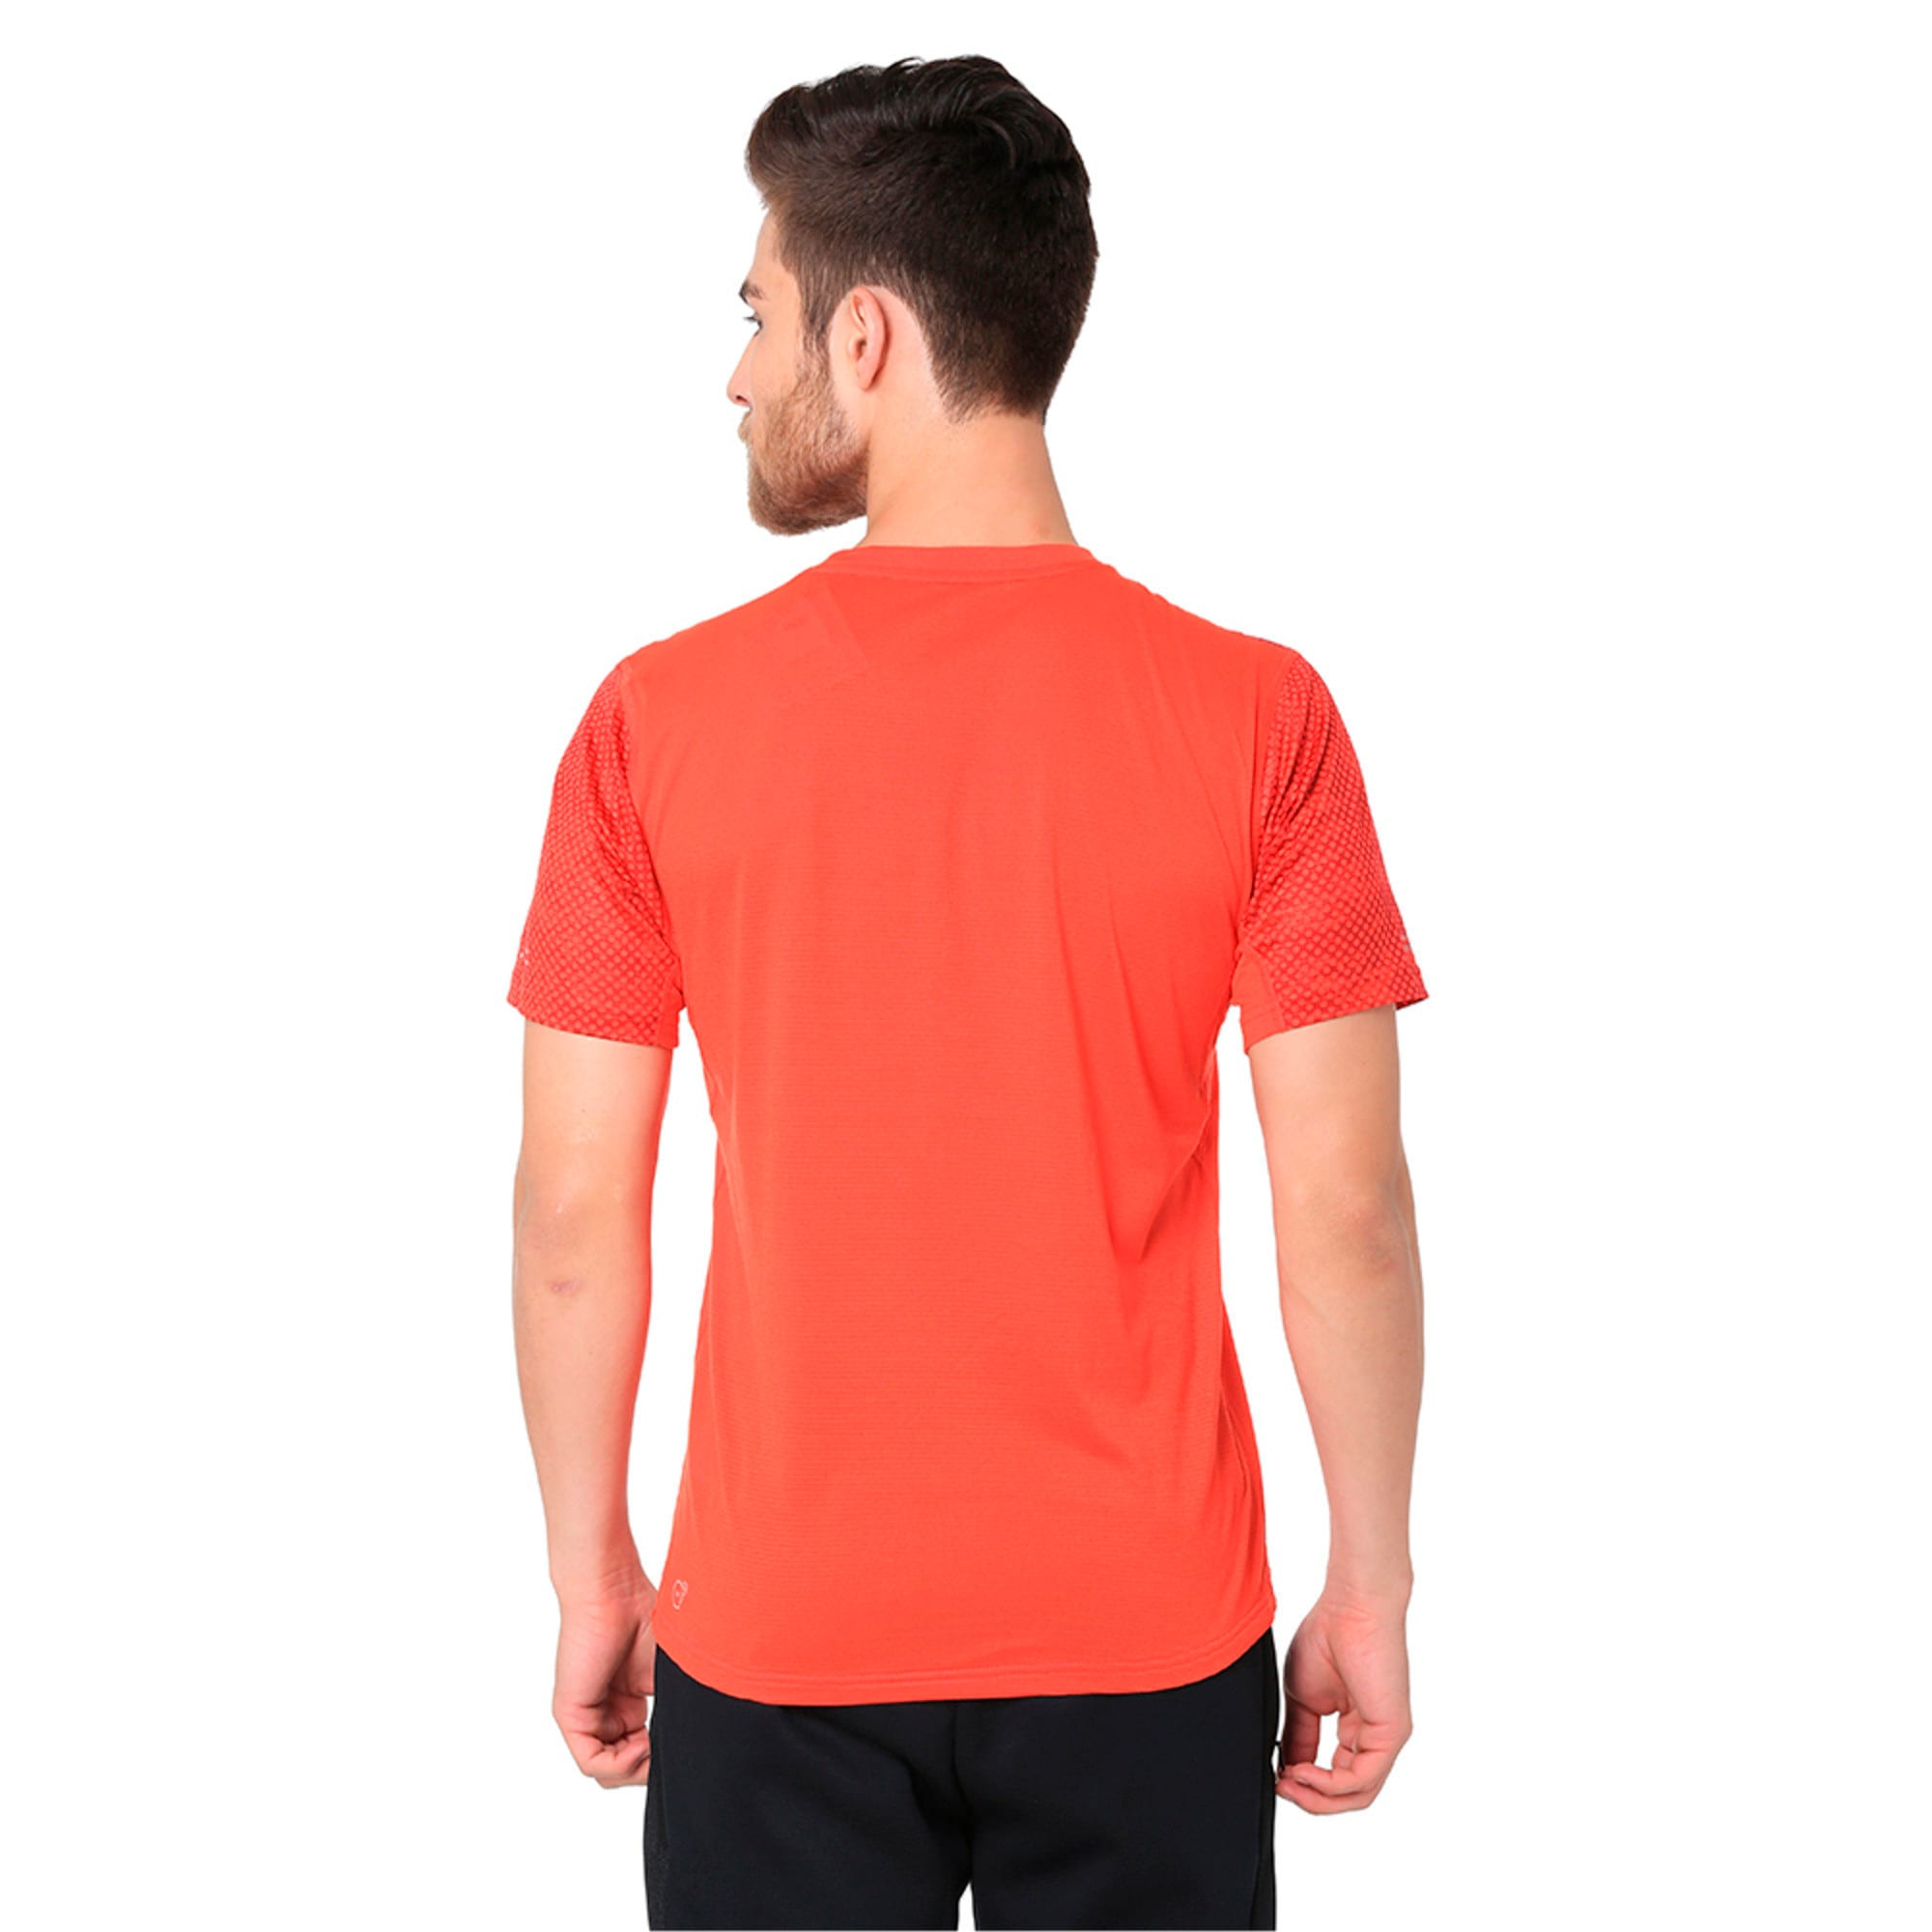 Thumbnail 1 of Graphic Short Sleeve Men's Running T-Shirt, Flame Scarlet, medium-IND